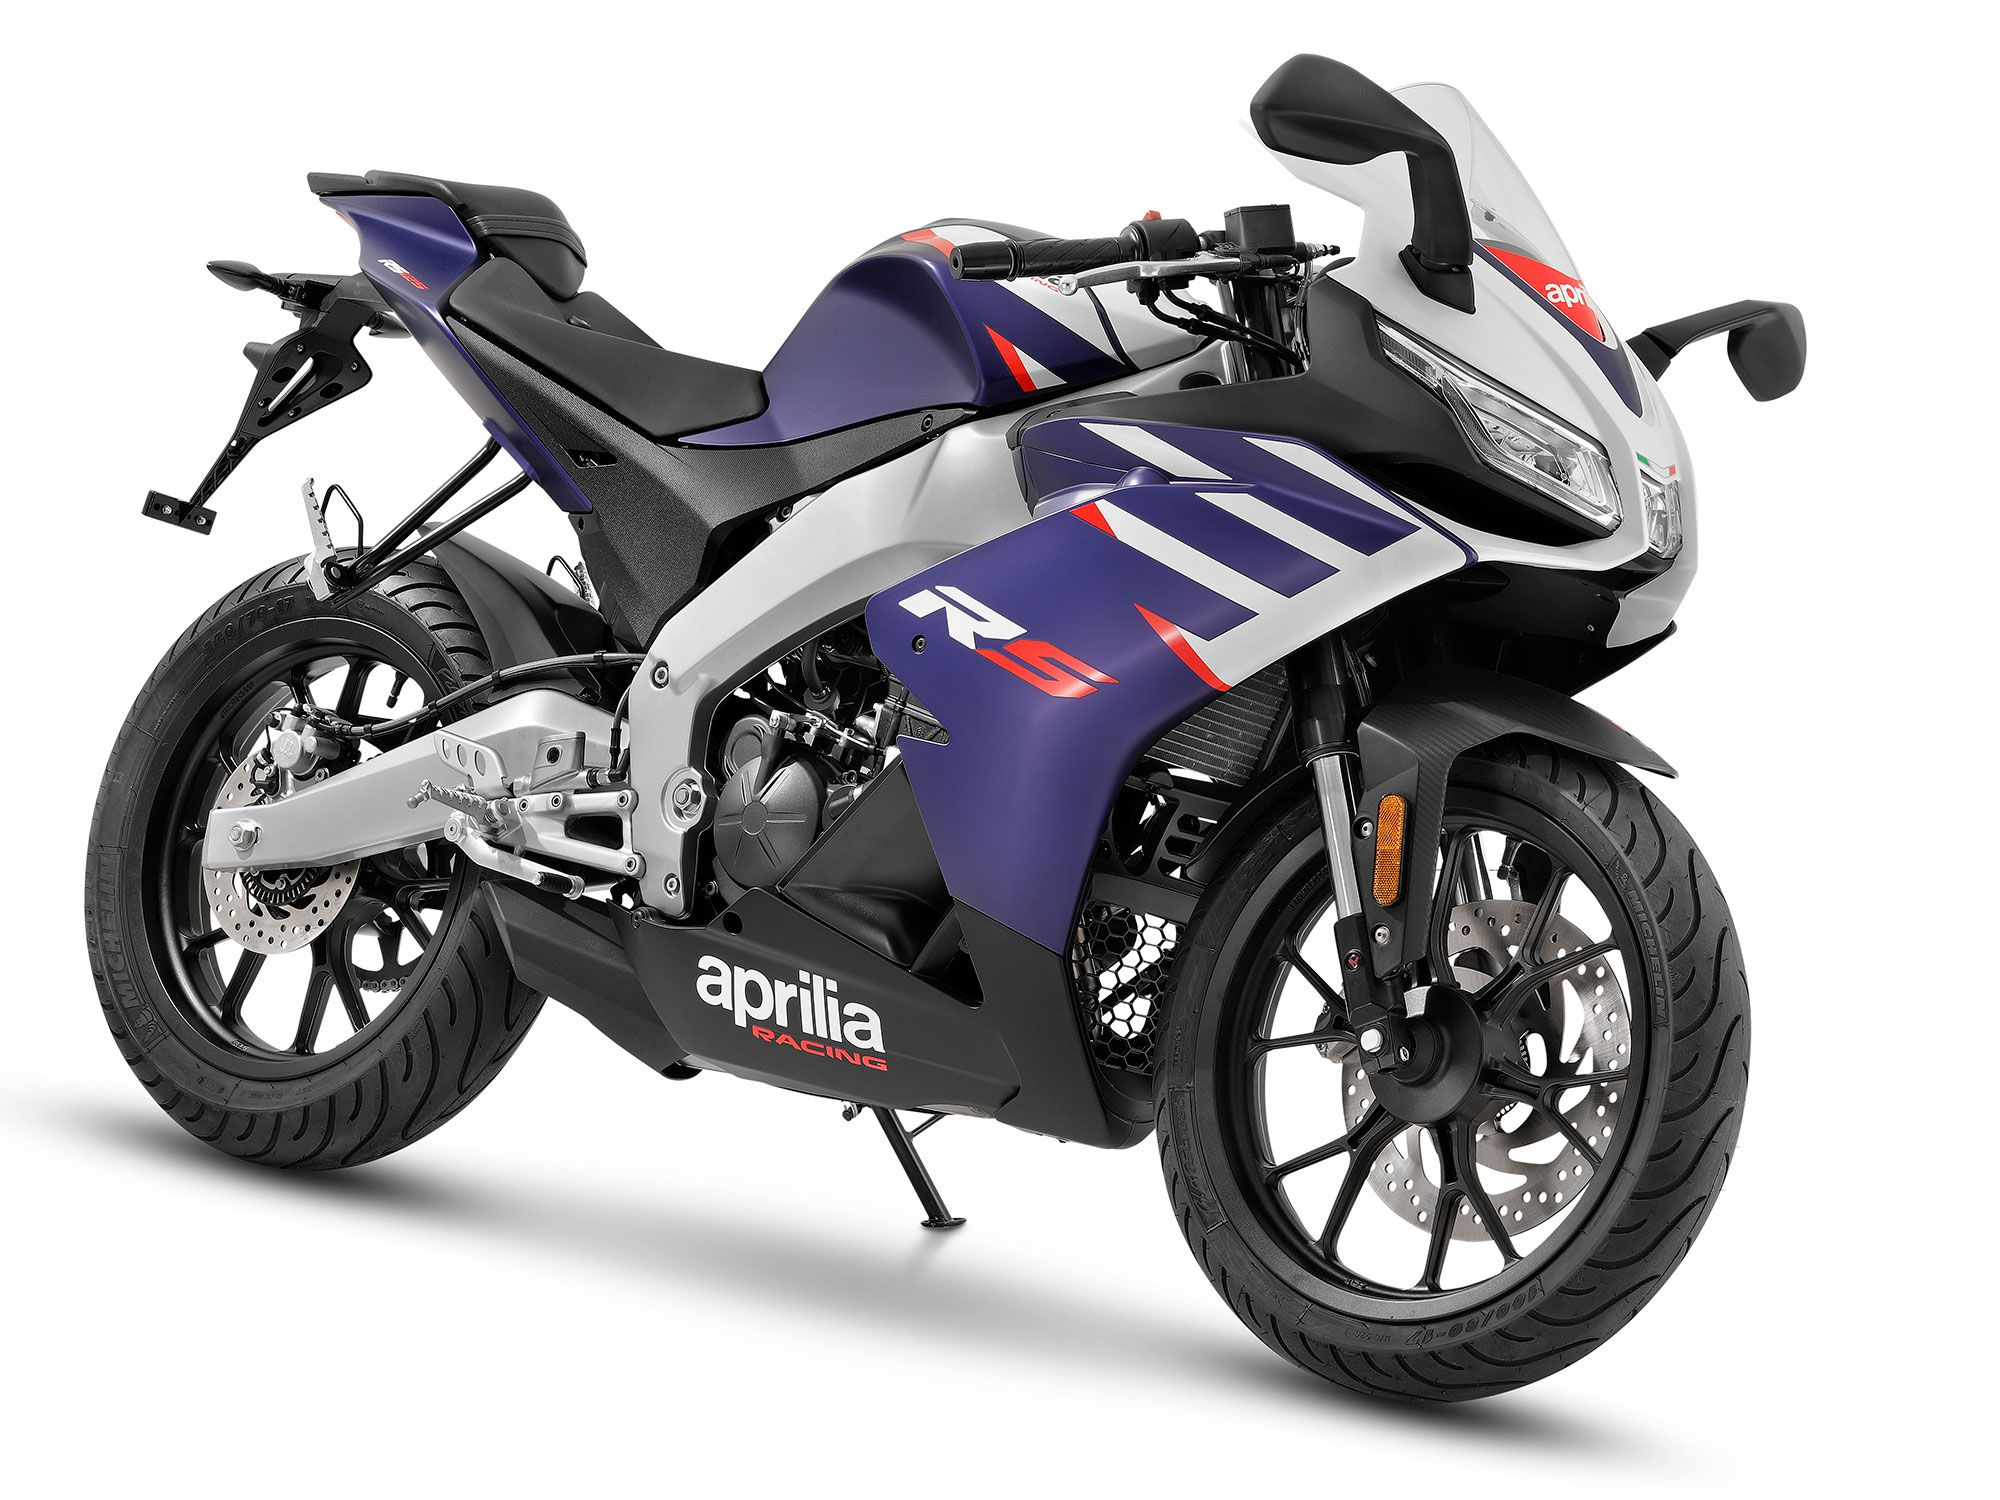 The RS 125 can be fit with an optional electronic quickshifter.